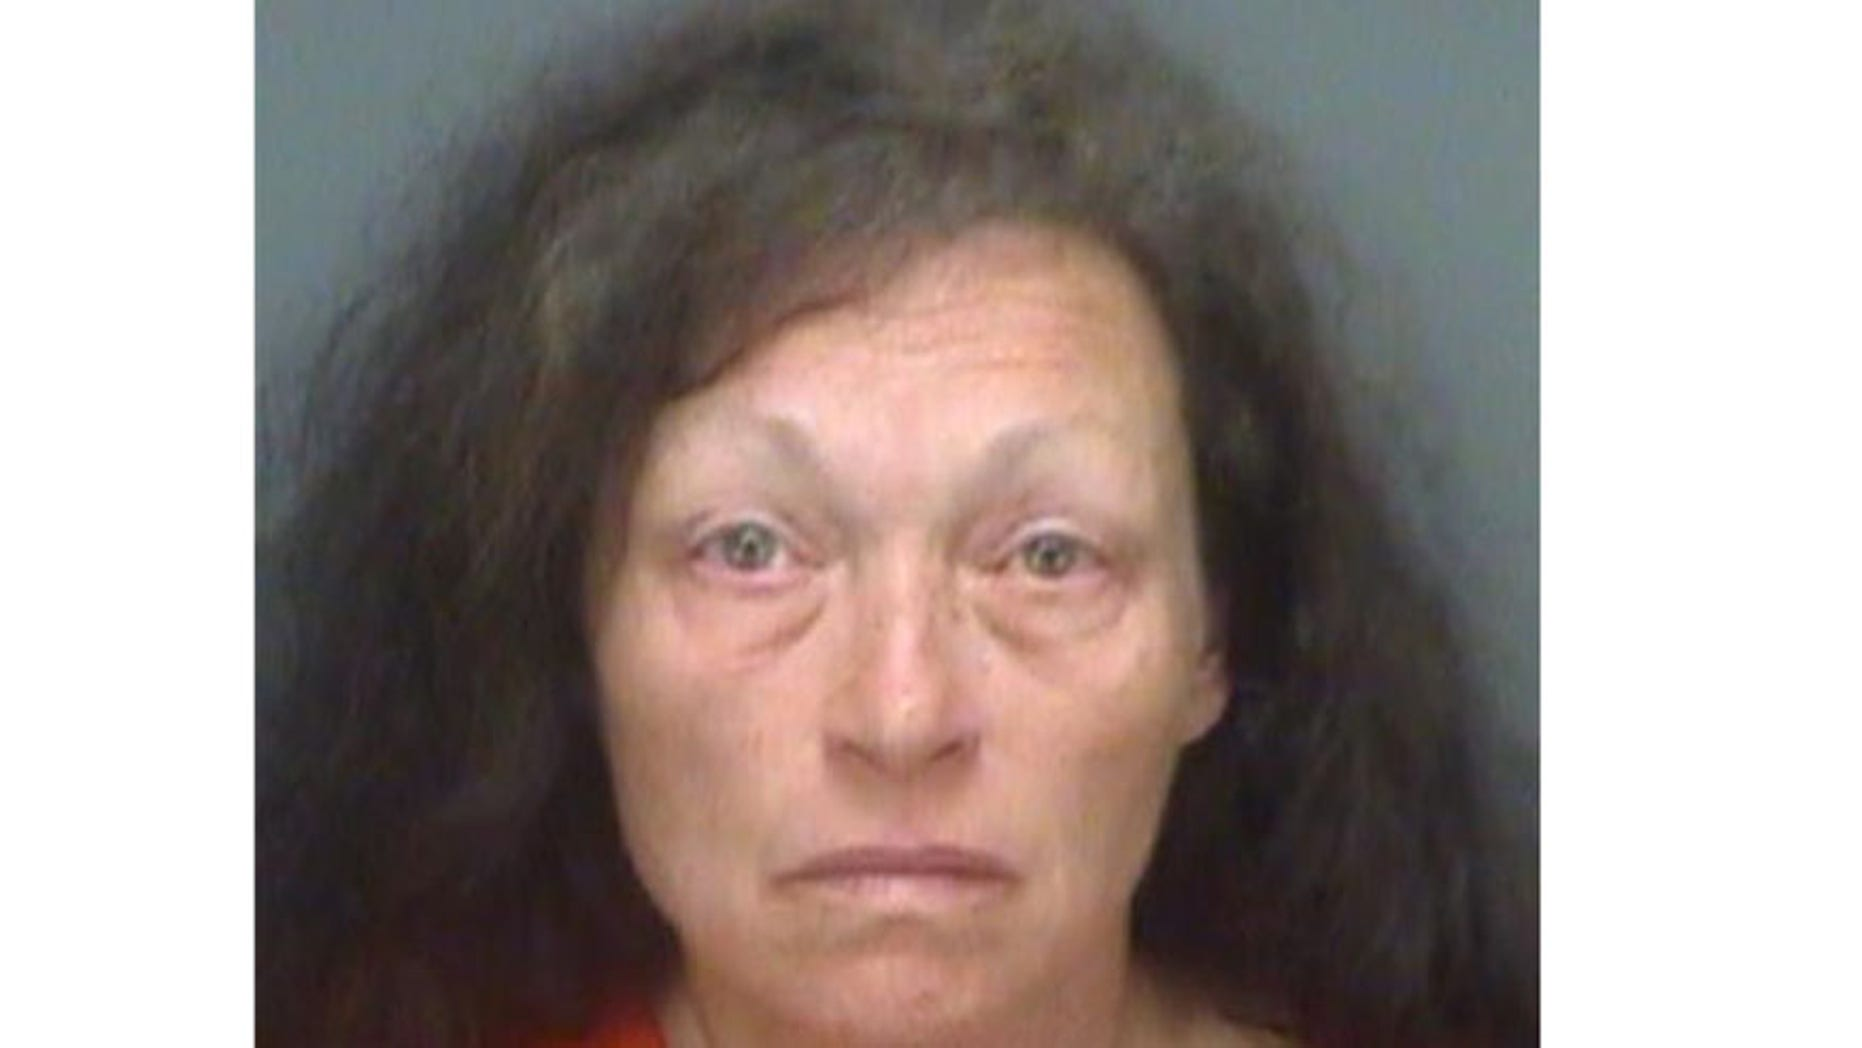 Kathleen Steele's booking photo. (Pinellas County Sheriff's Office)